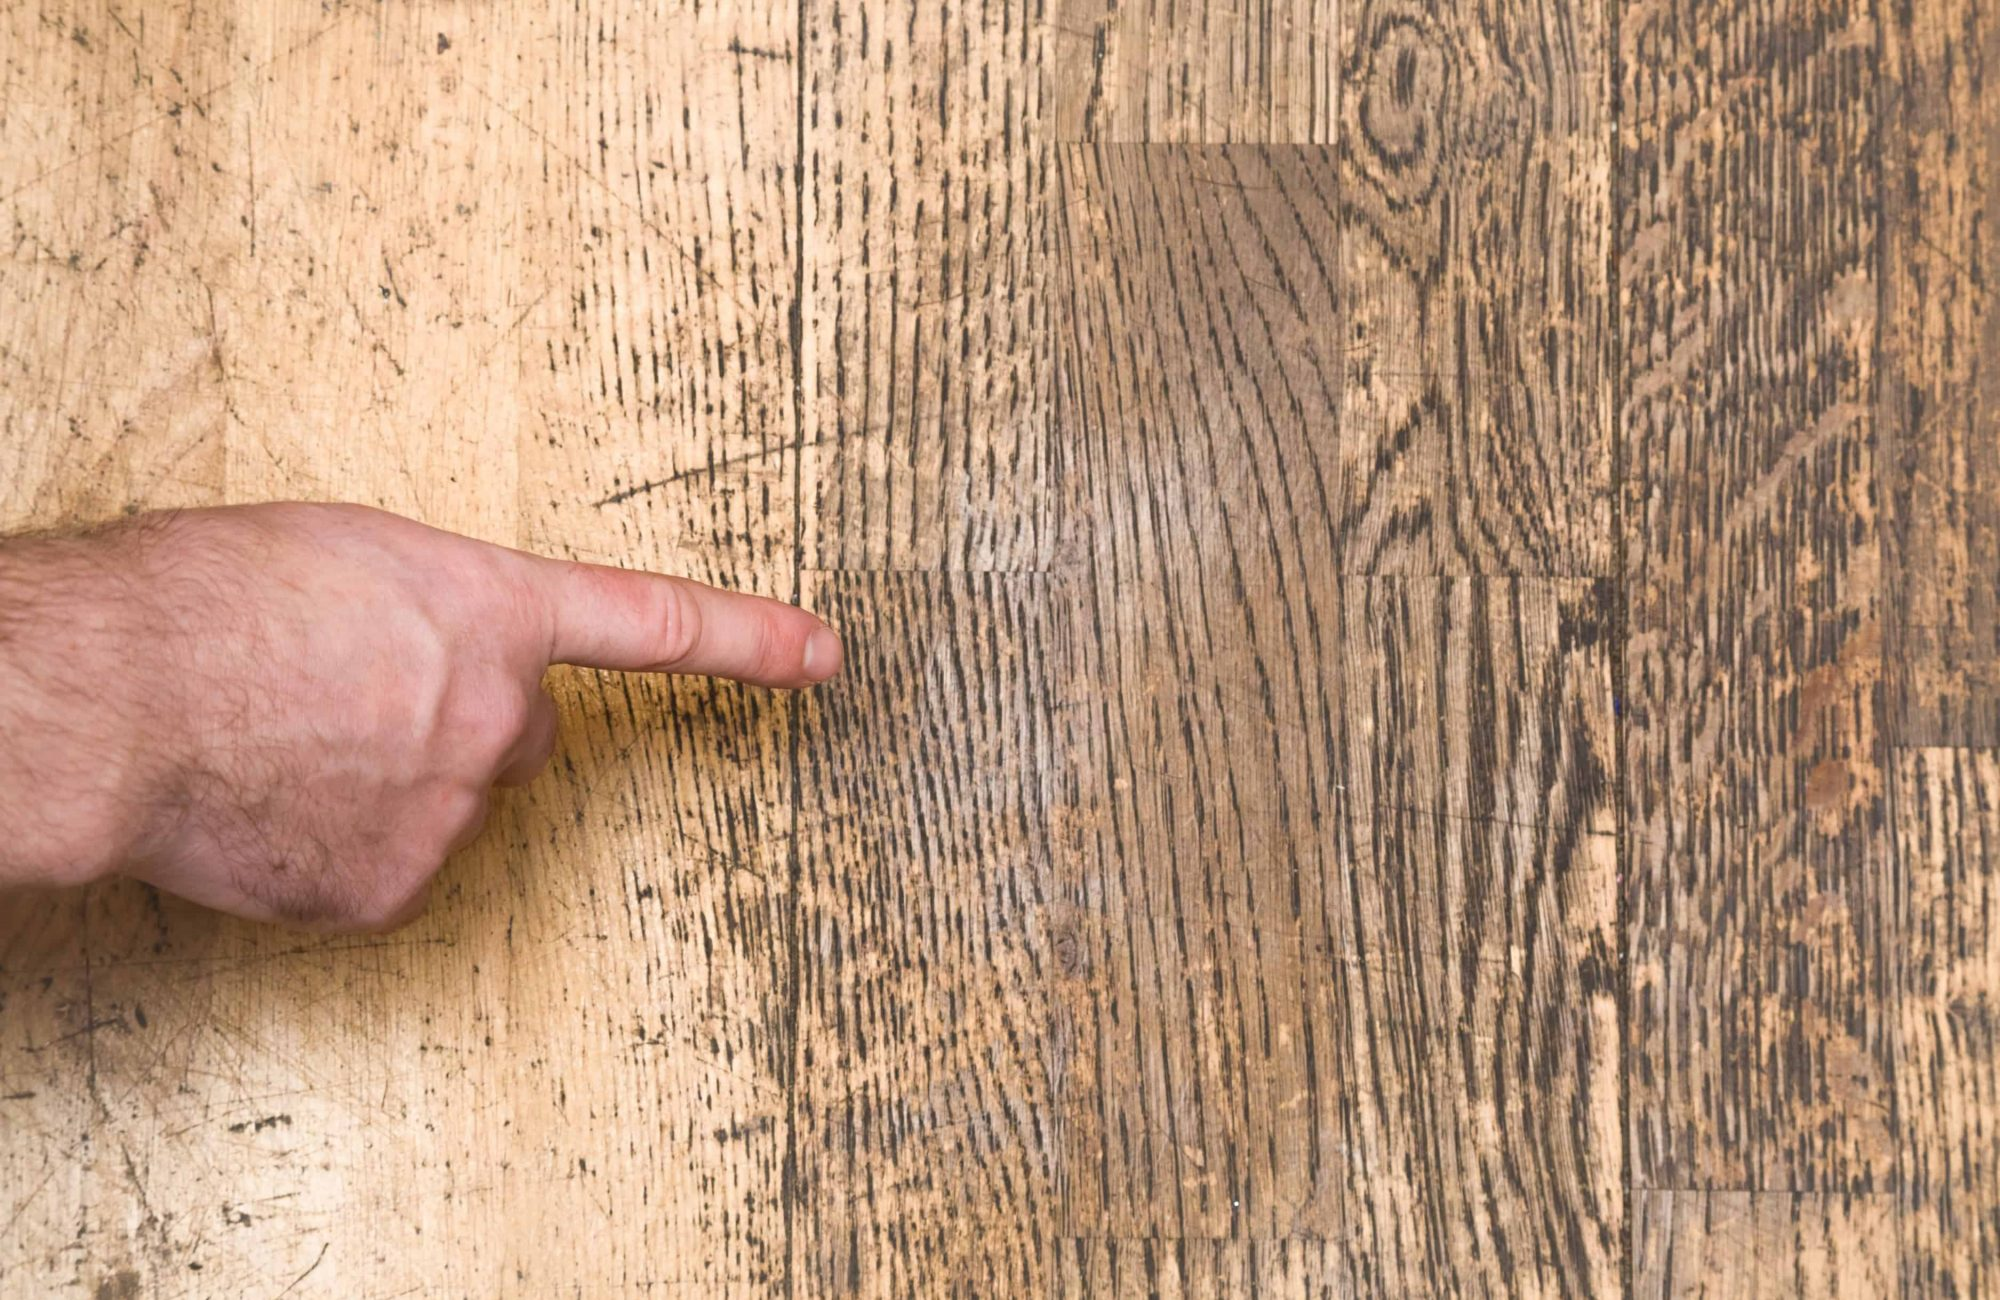 Man's hand pointing to the old scratched wooden floor in the room. Problems and solutions concept.